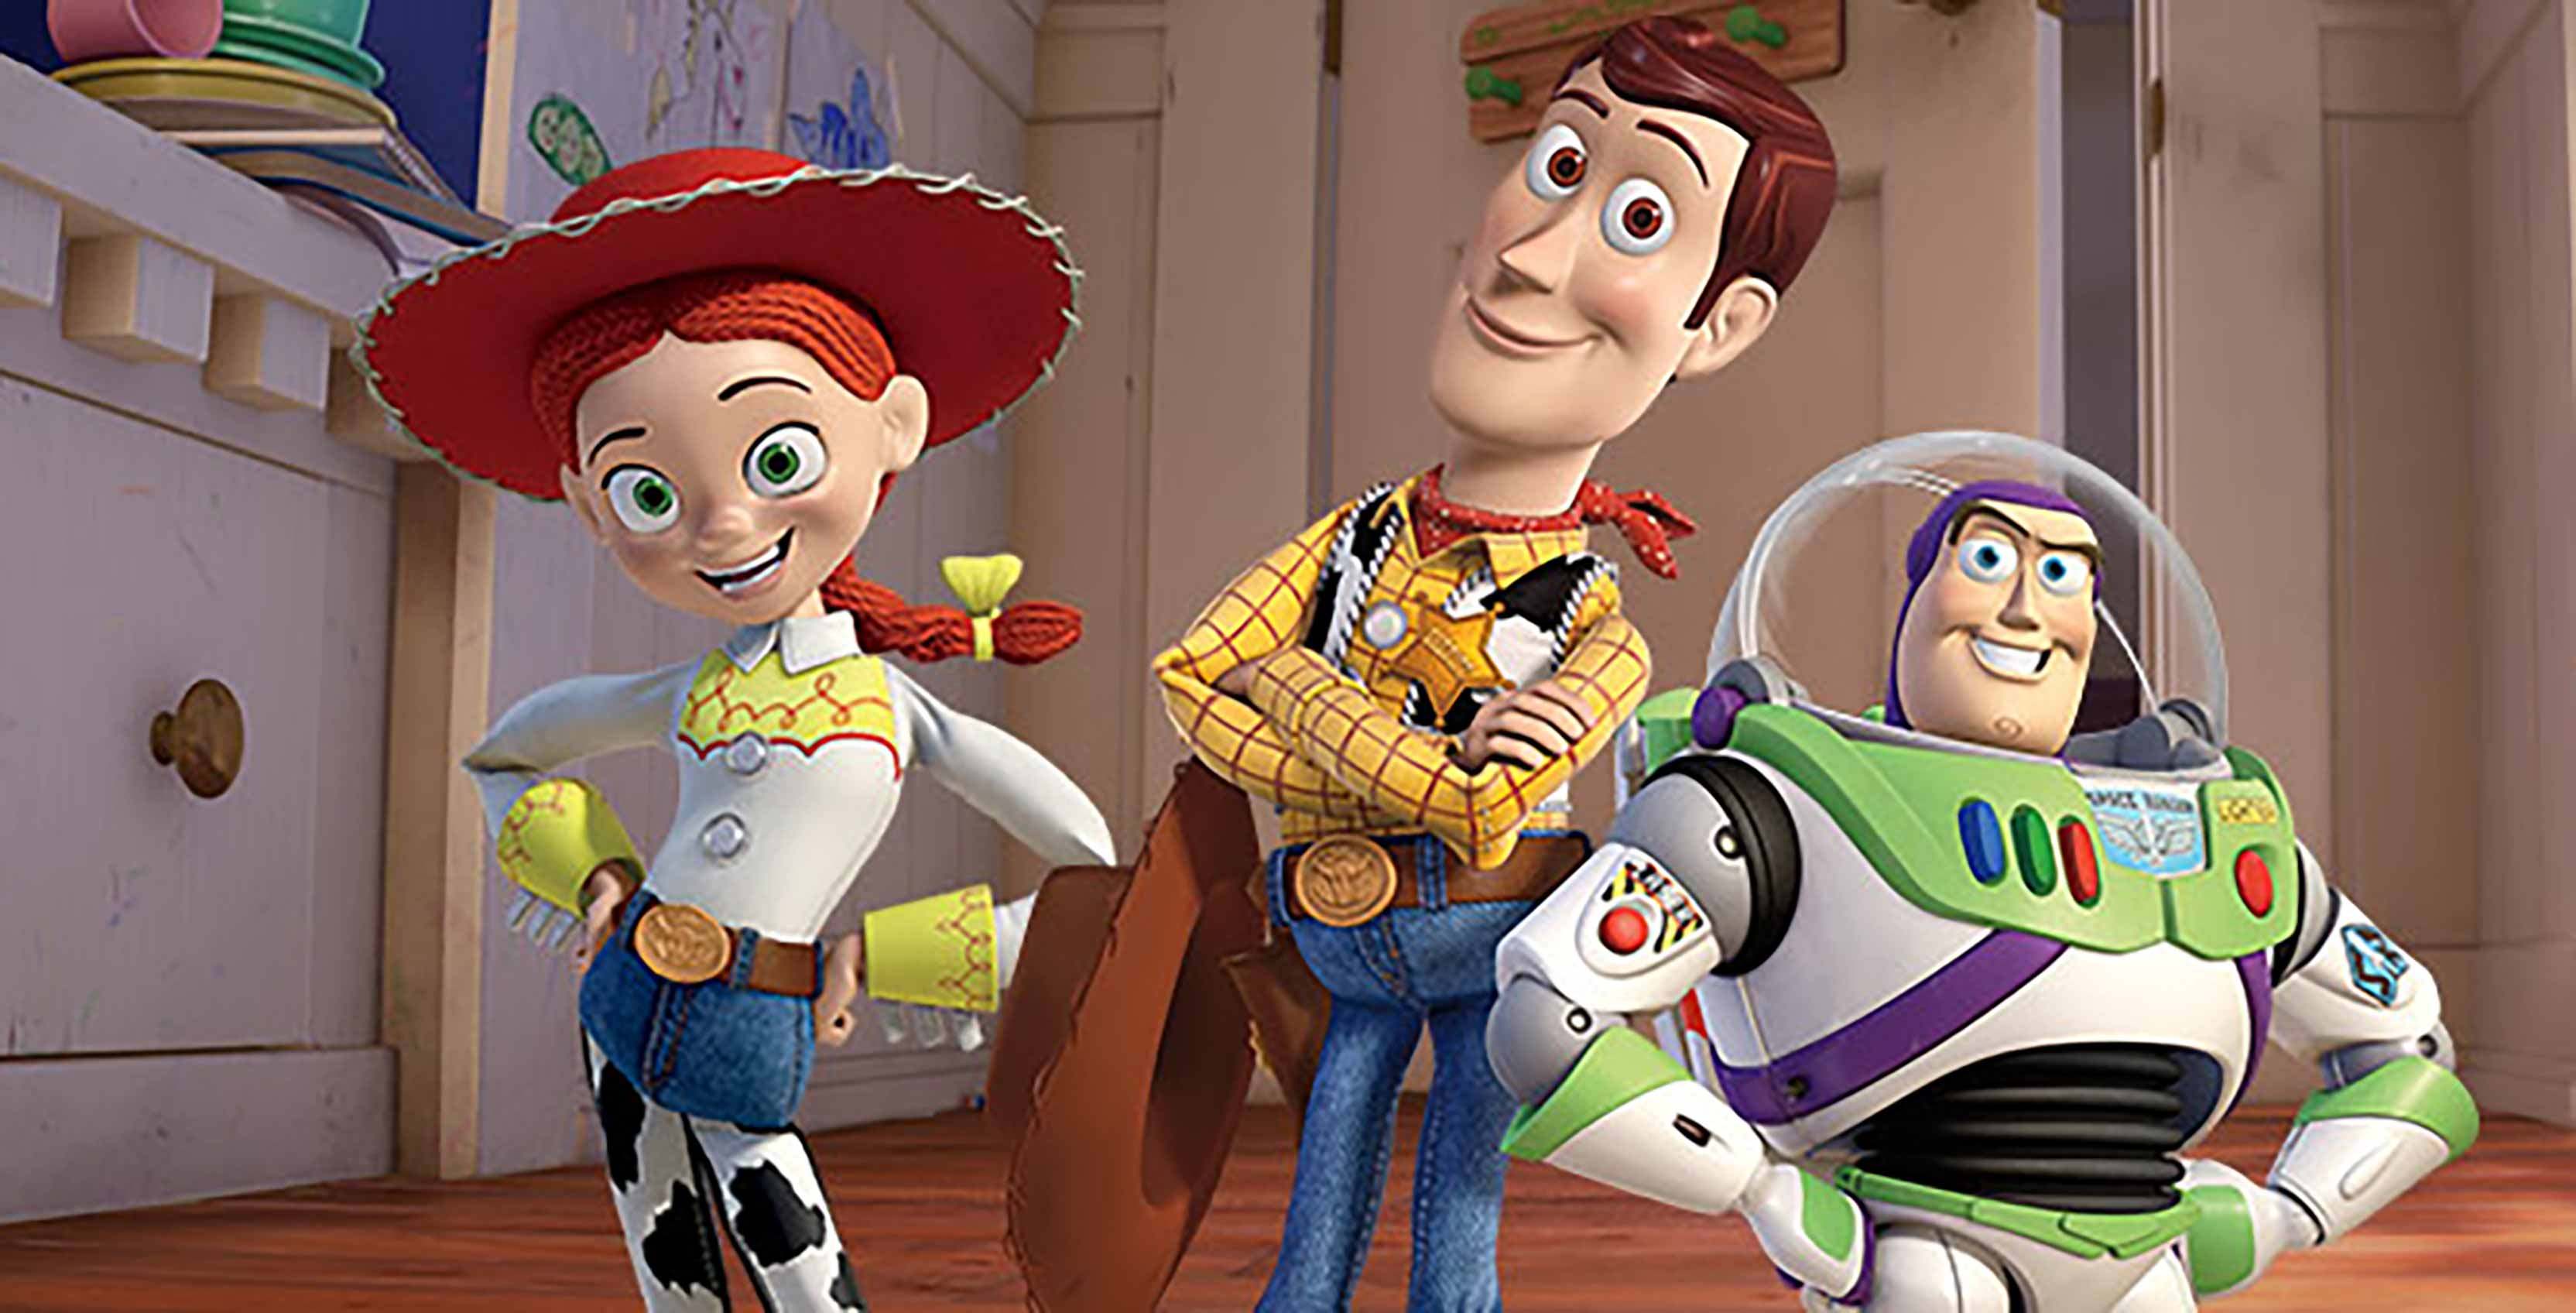 Toy Story Jessie, Woody, Buzz